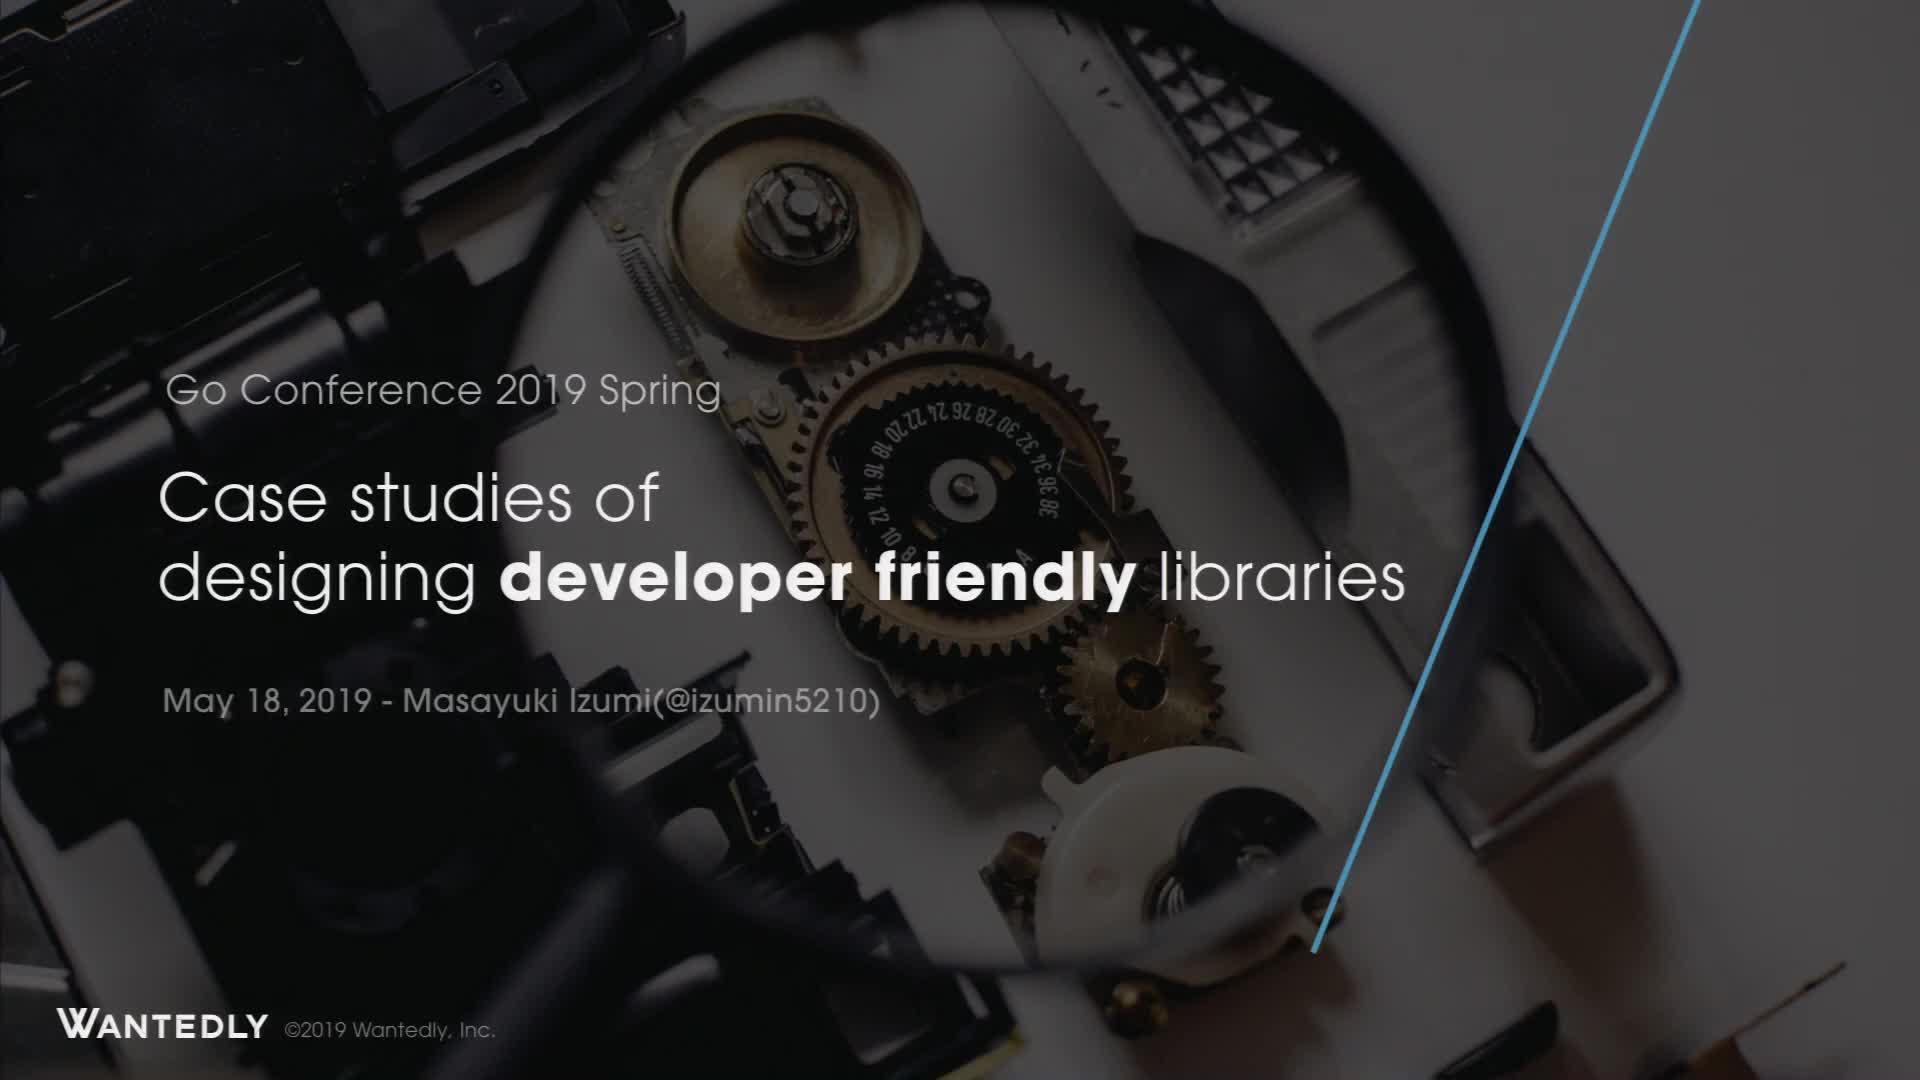 Case studies of designing developer friendly libraries